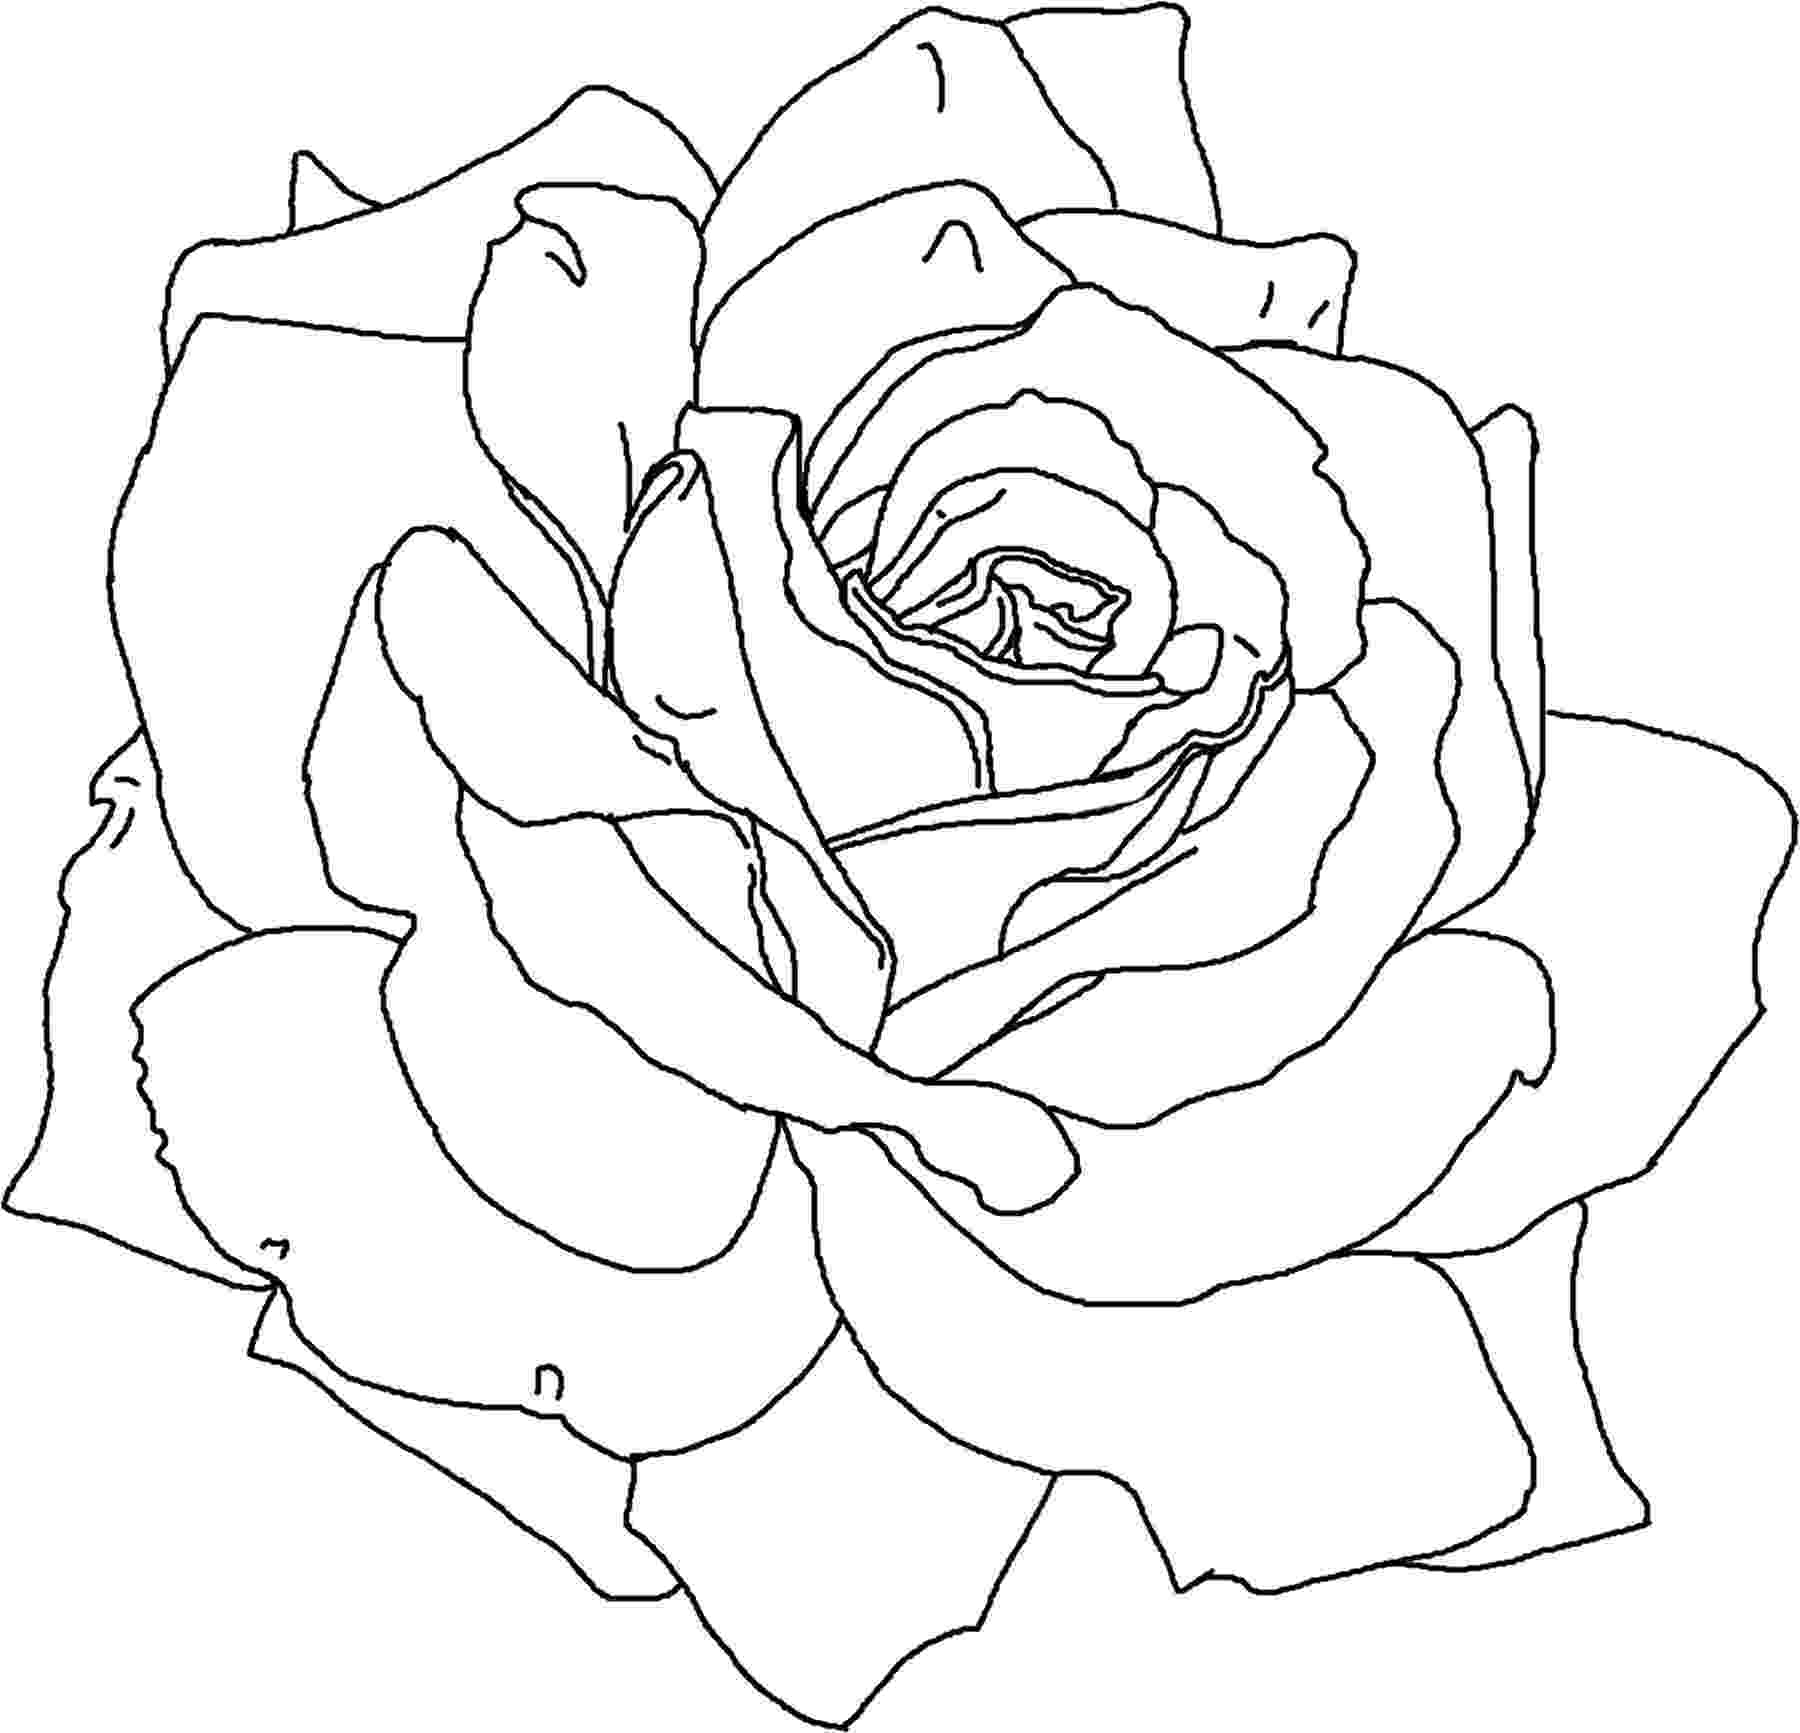 flower coloring pages printables free printable flower coloring pages for kids best flower printables pages coloring 1 1